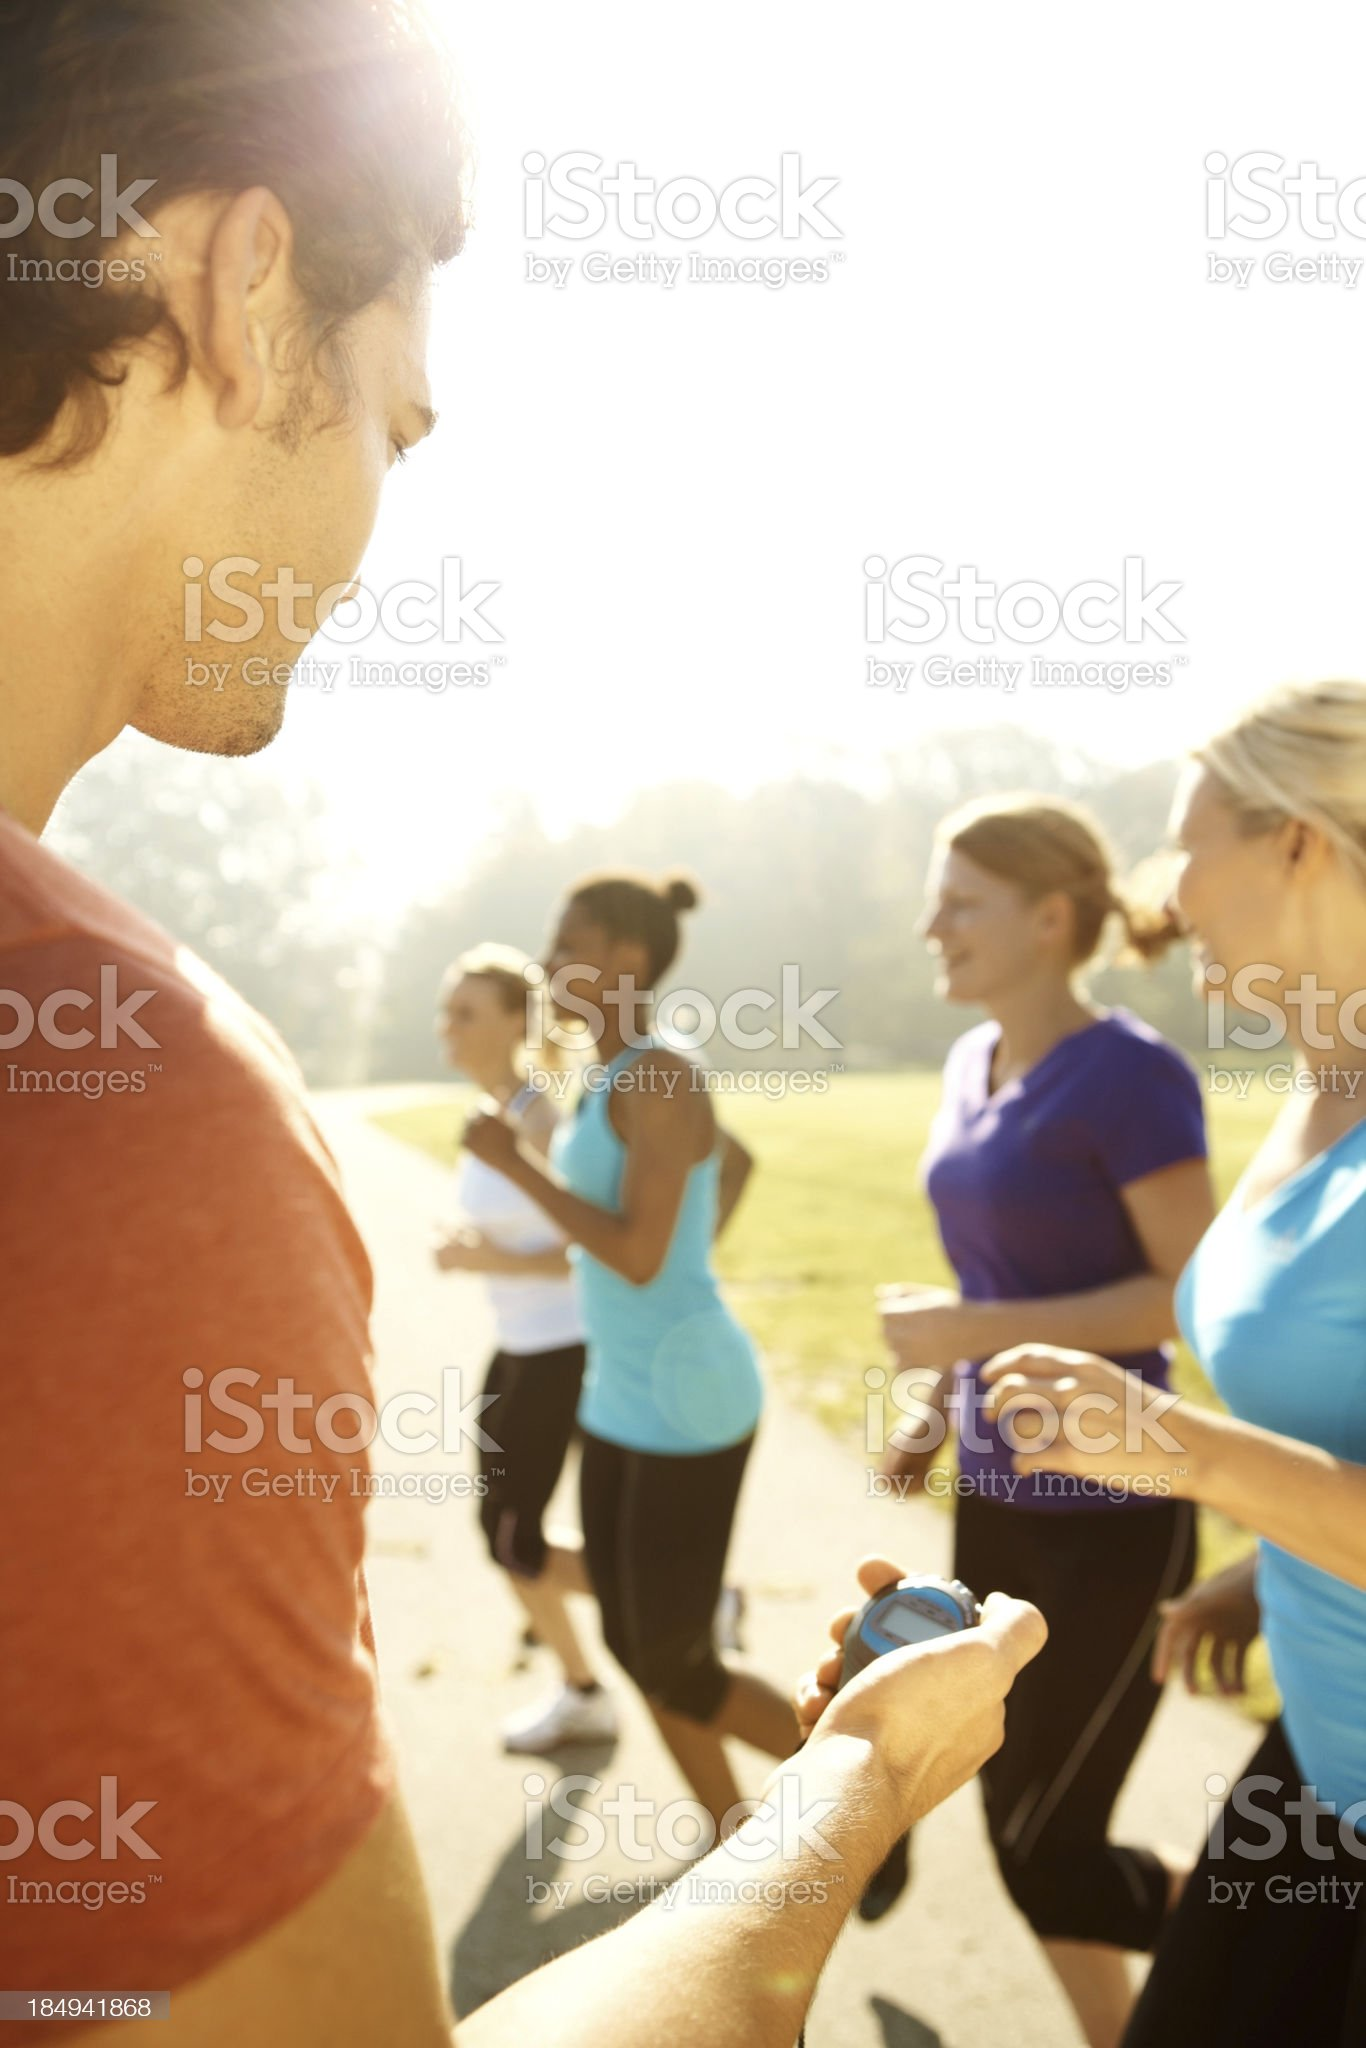 Qualifying for a healthy lifestyle royalty-free stock photo